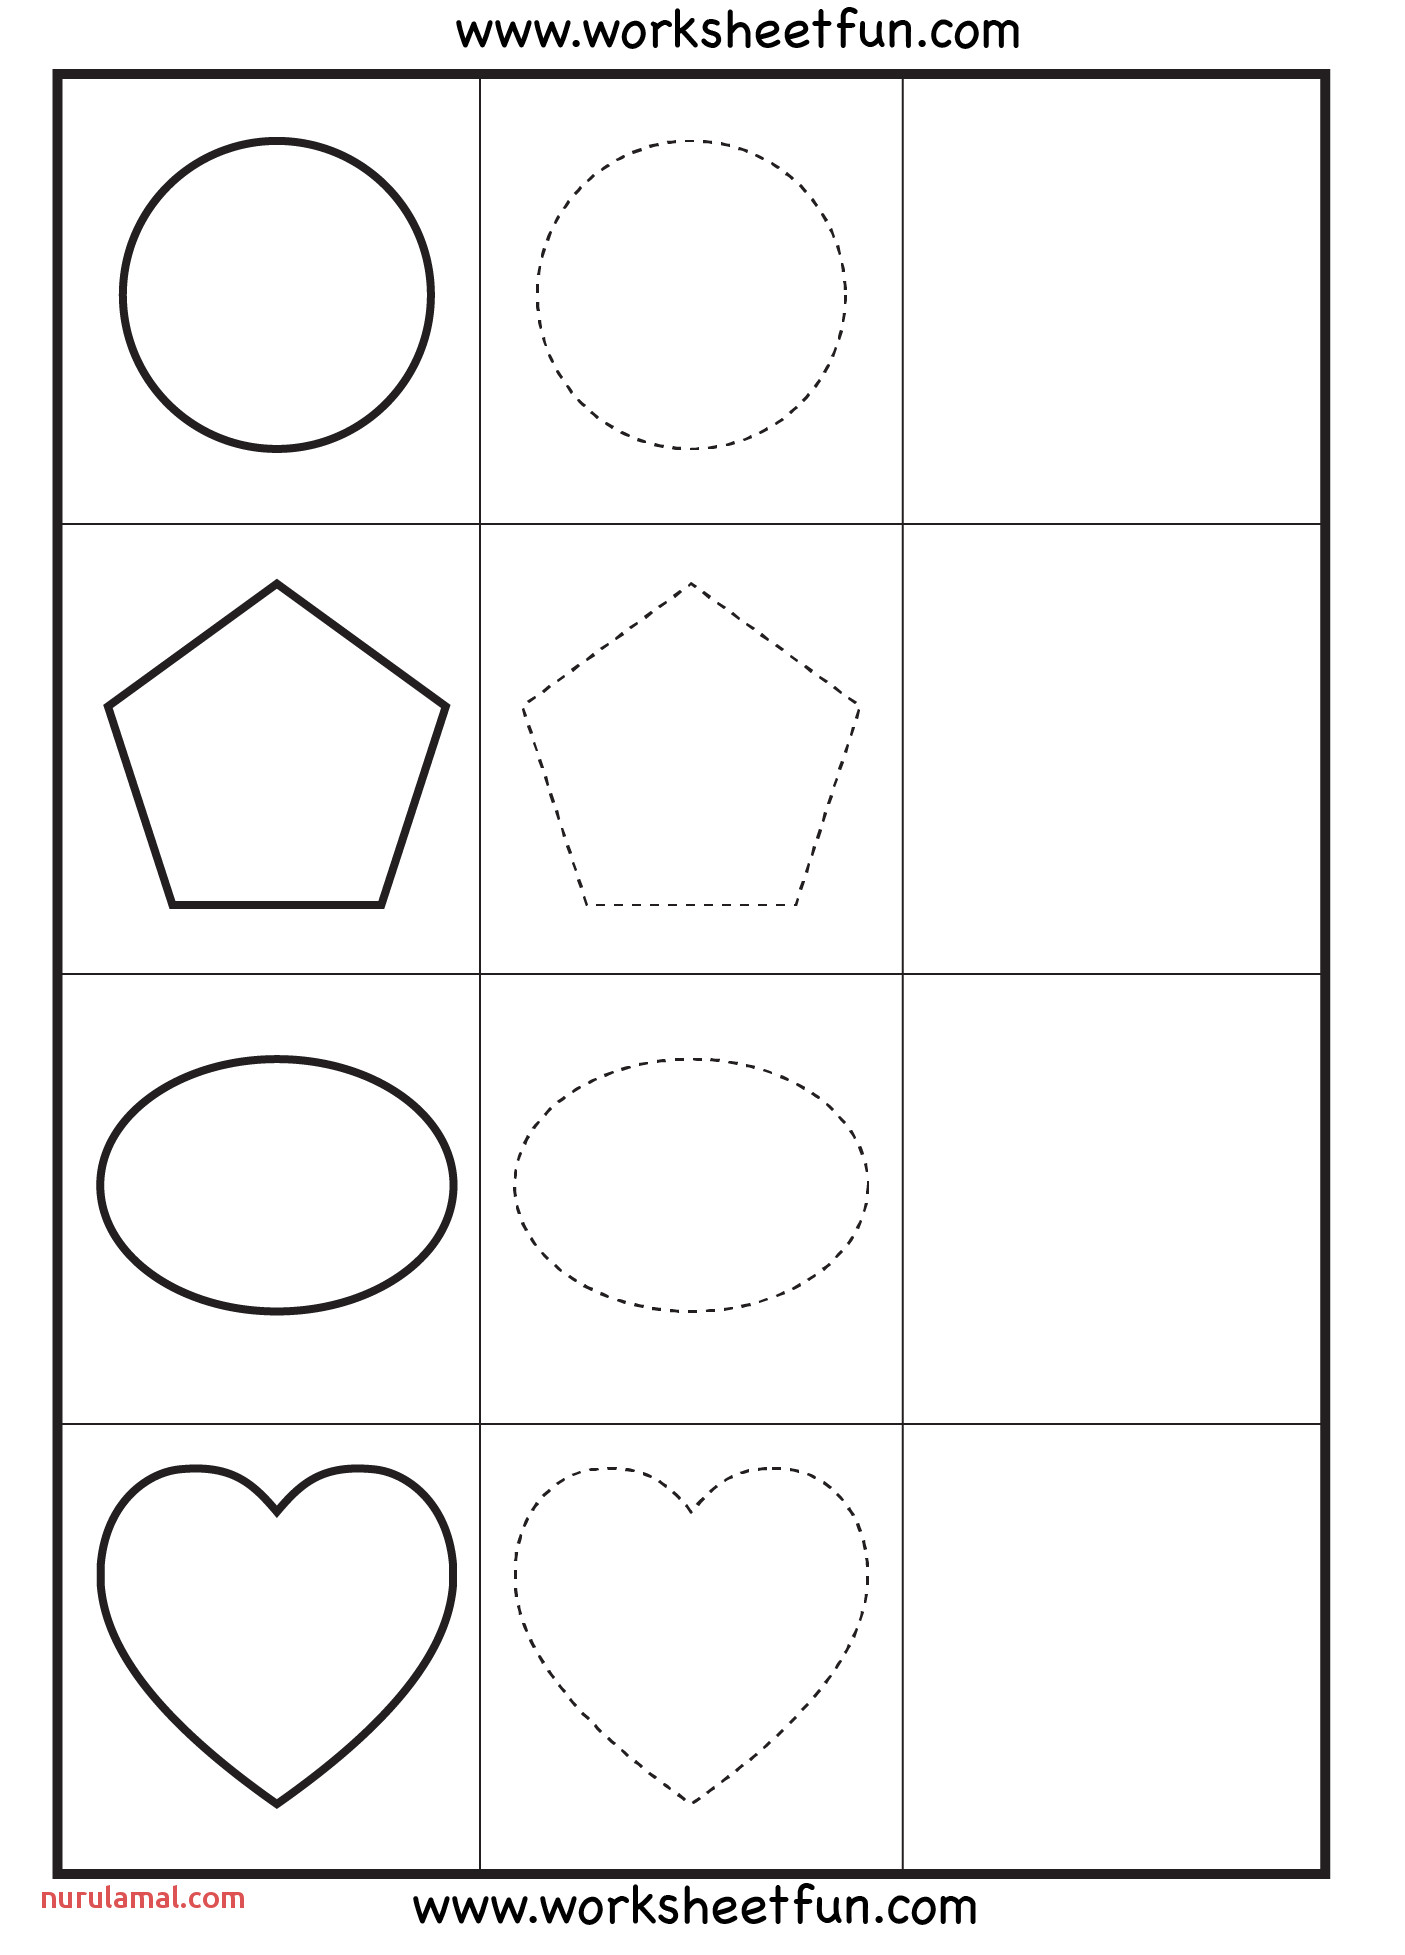 Preschool Tracing Practice Worksheets Nurul Amal